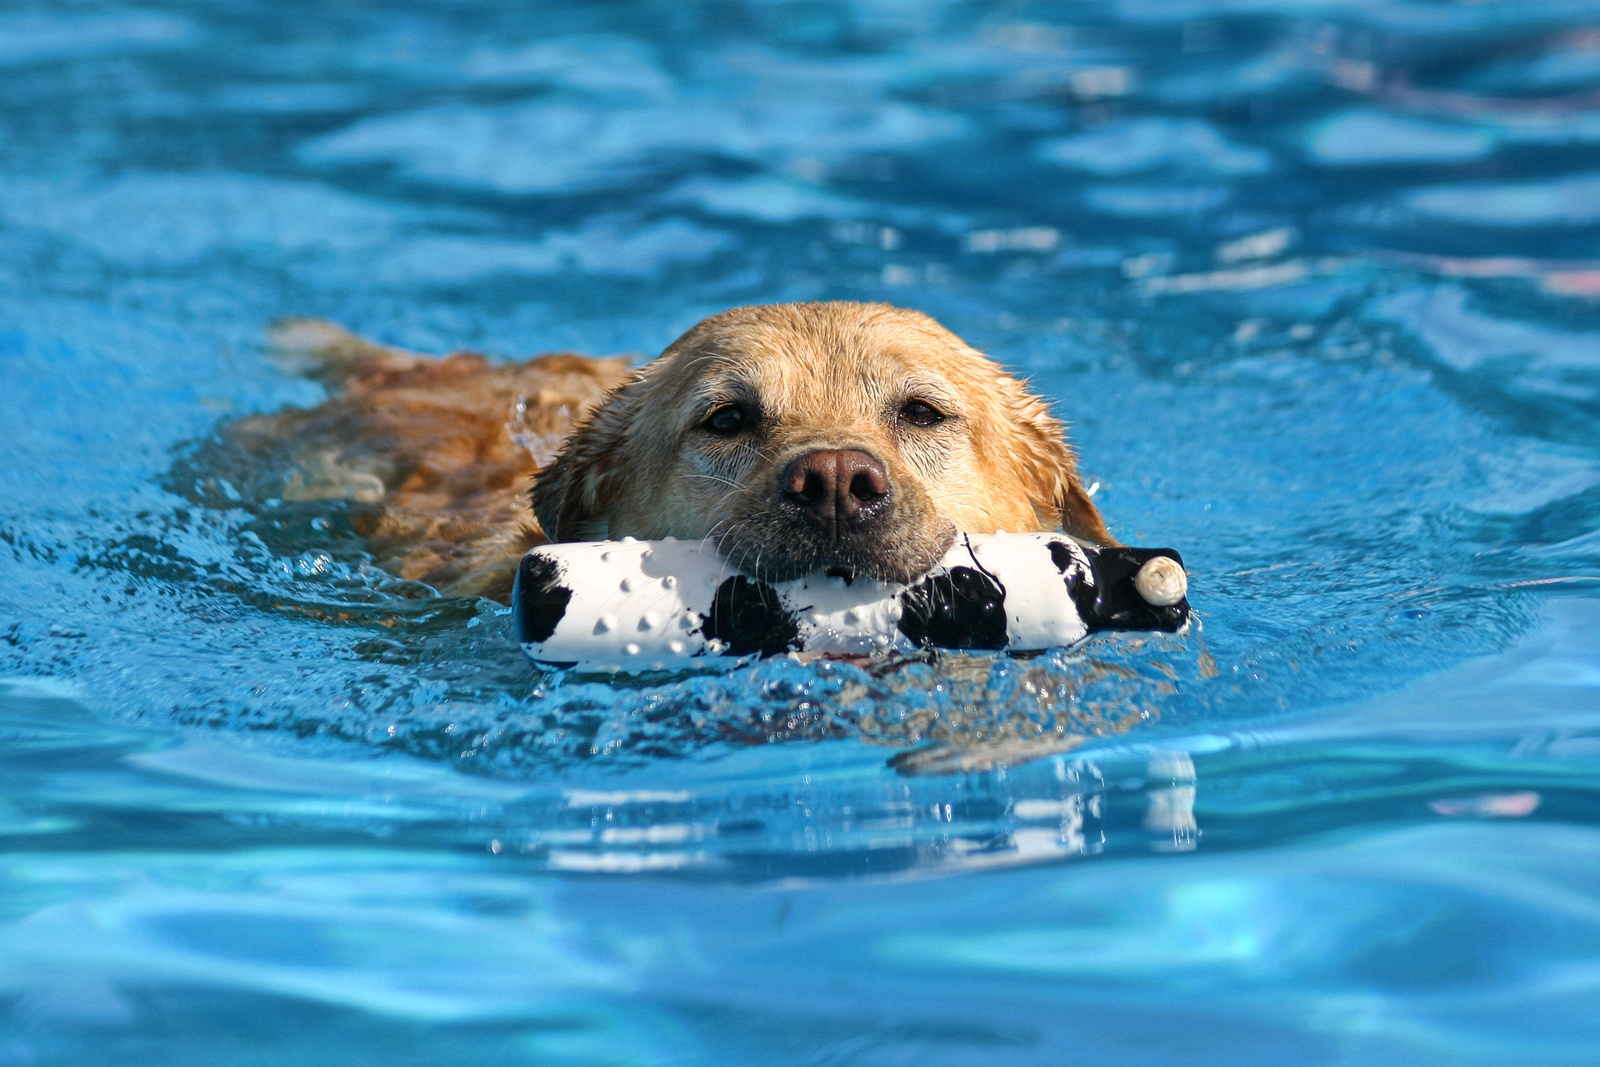 bigstock-dog-at-a-pool-19387085.jpg